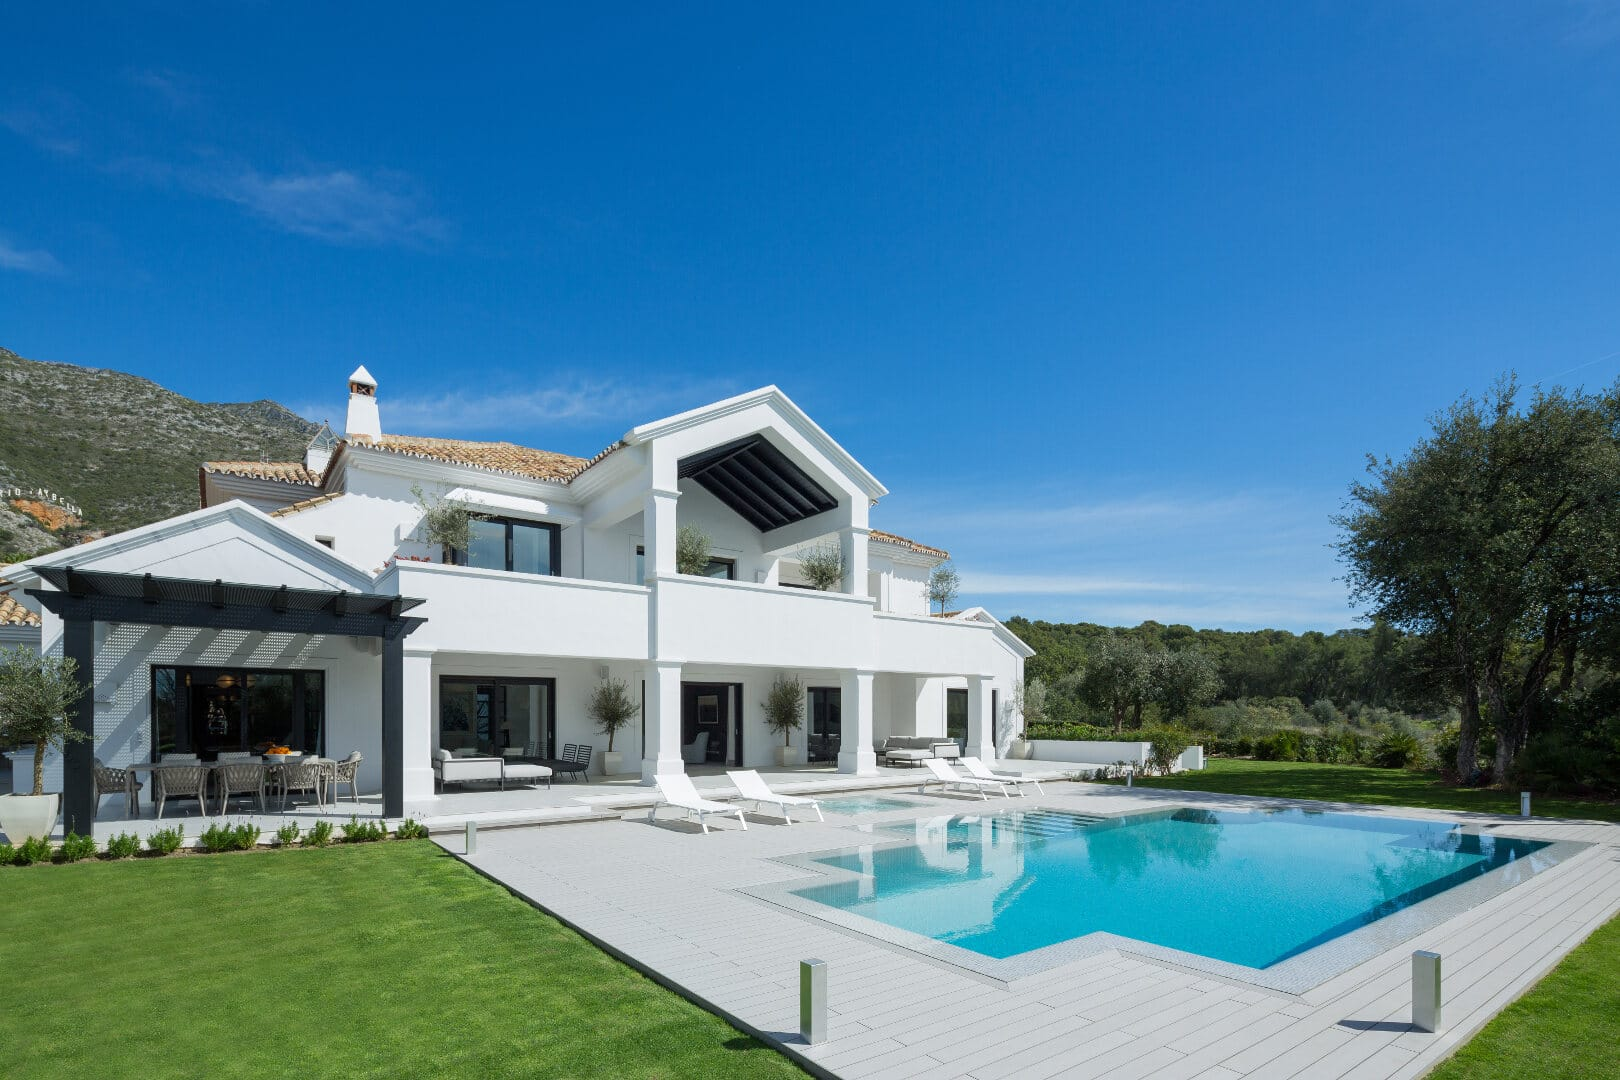 An exceptional villa in the gated 24-hour security community of Los Picos in Sierra Blanca Marbella